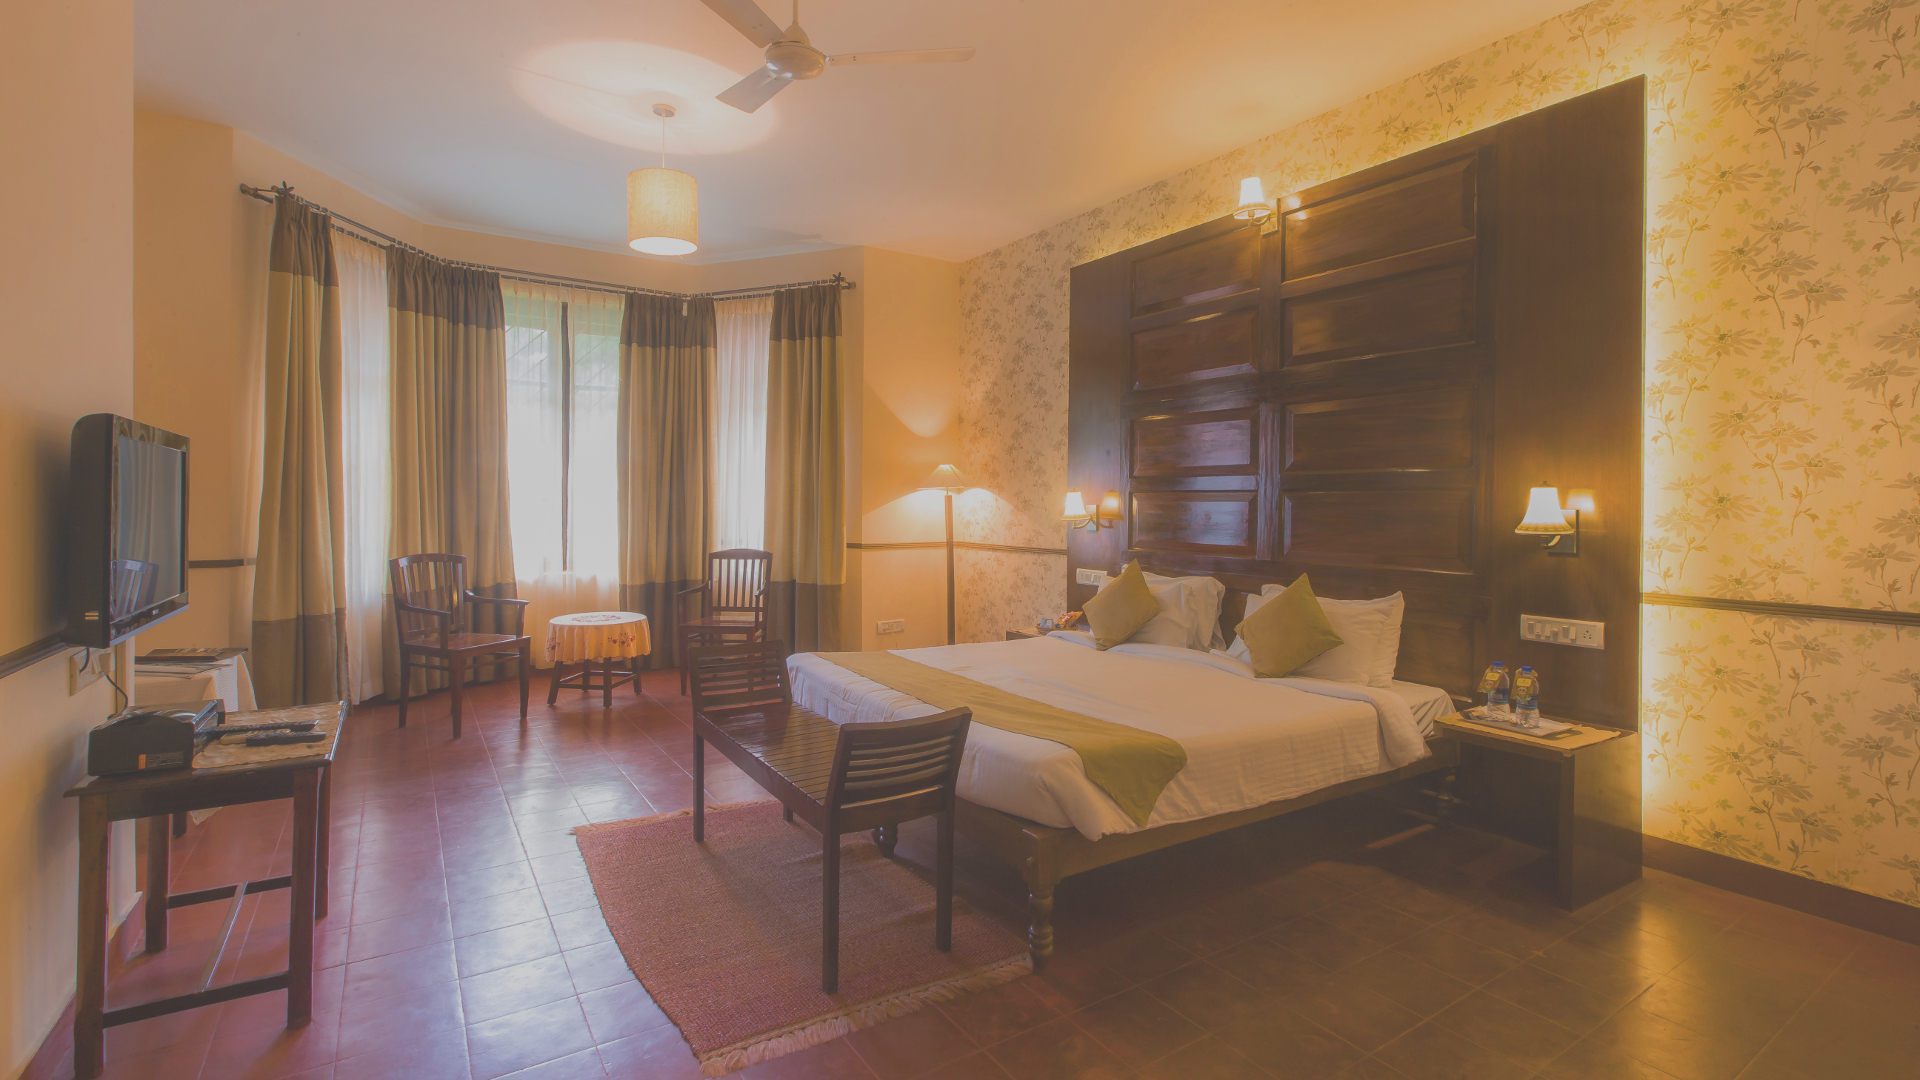 The majestic rooms at Thaneerhulla Bungalow